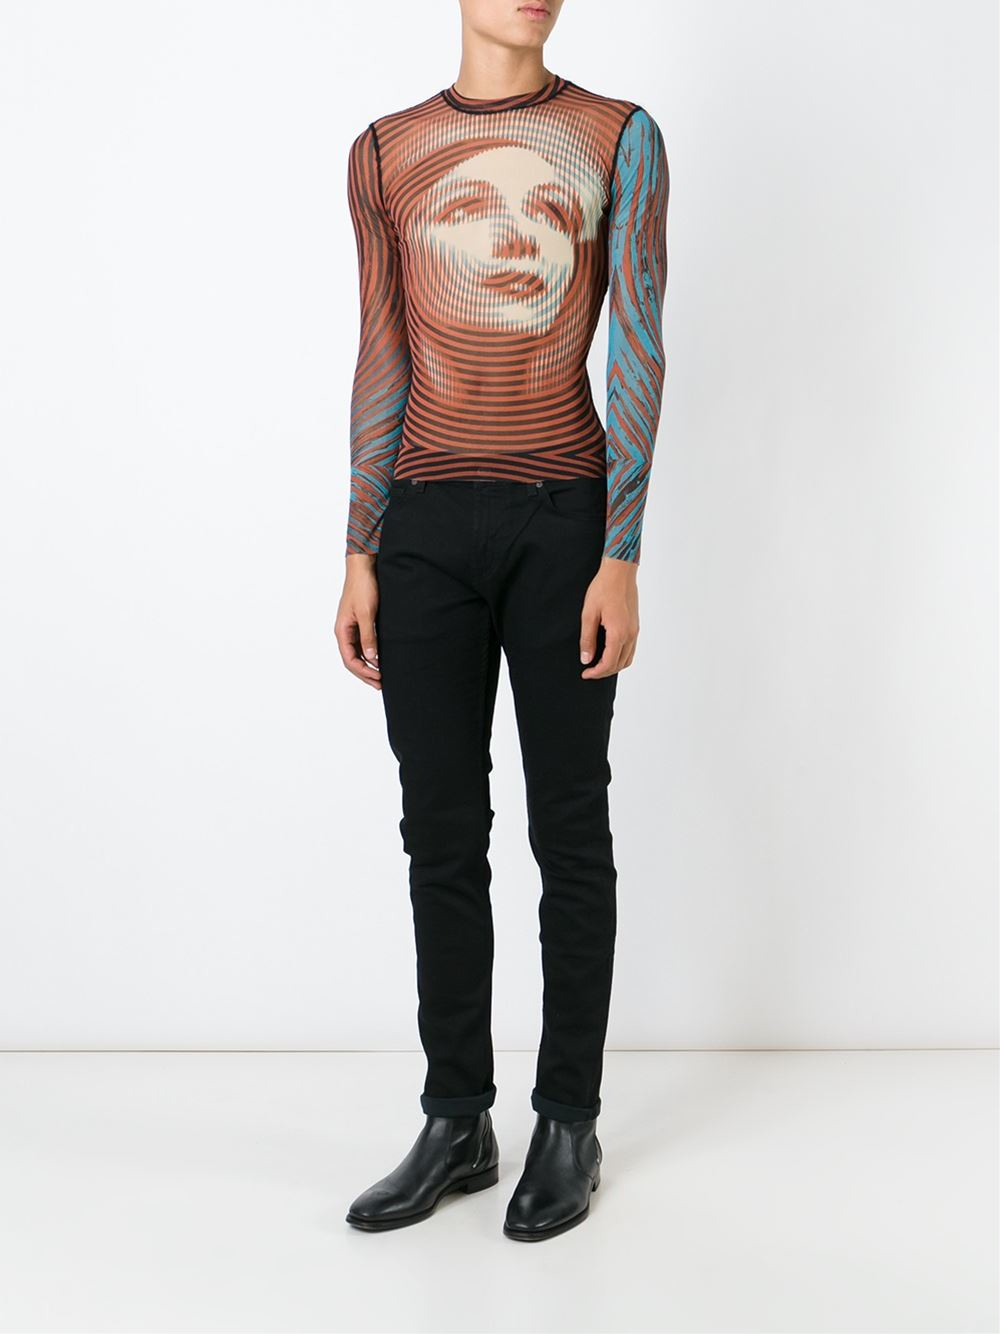 Jean paul gaultier sheer printed top in multicolor for men - Jean paul gaultier puissance 2 ...